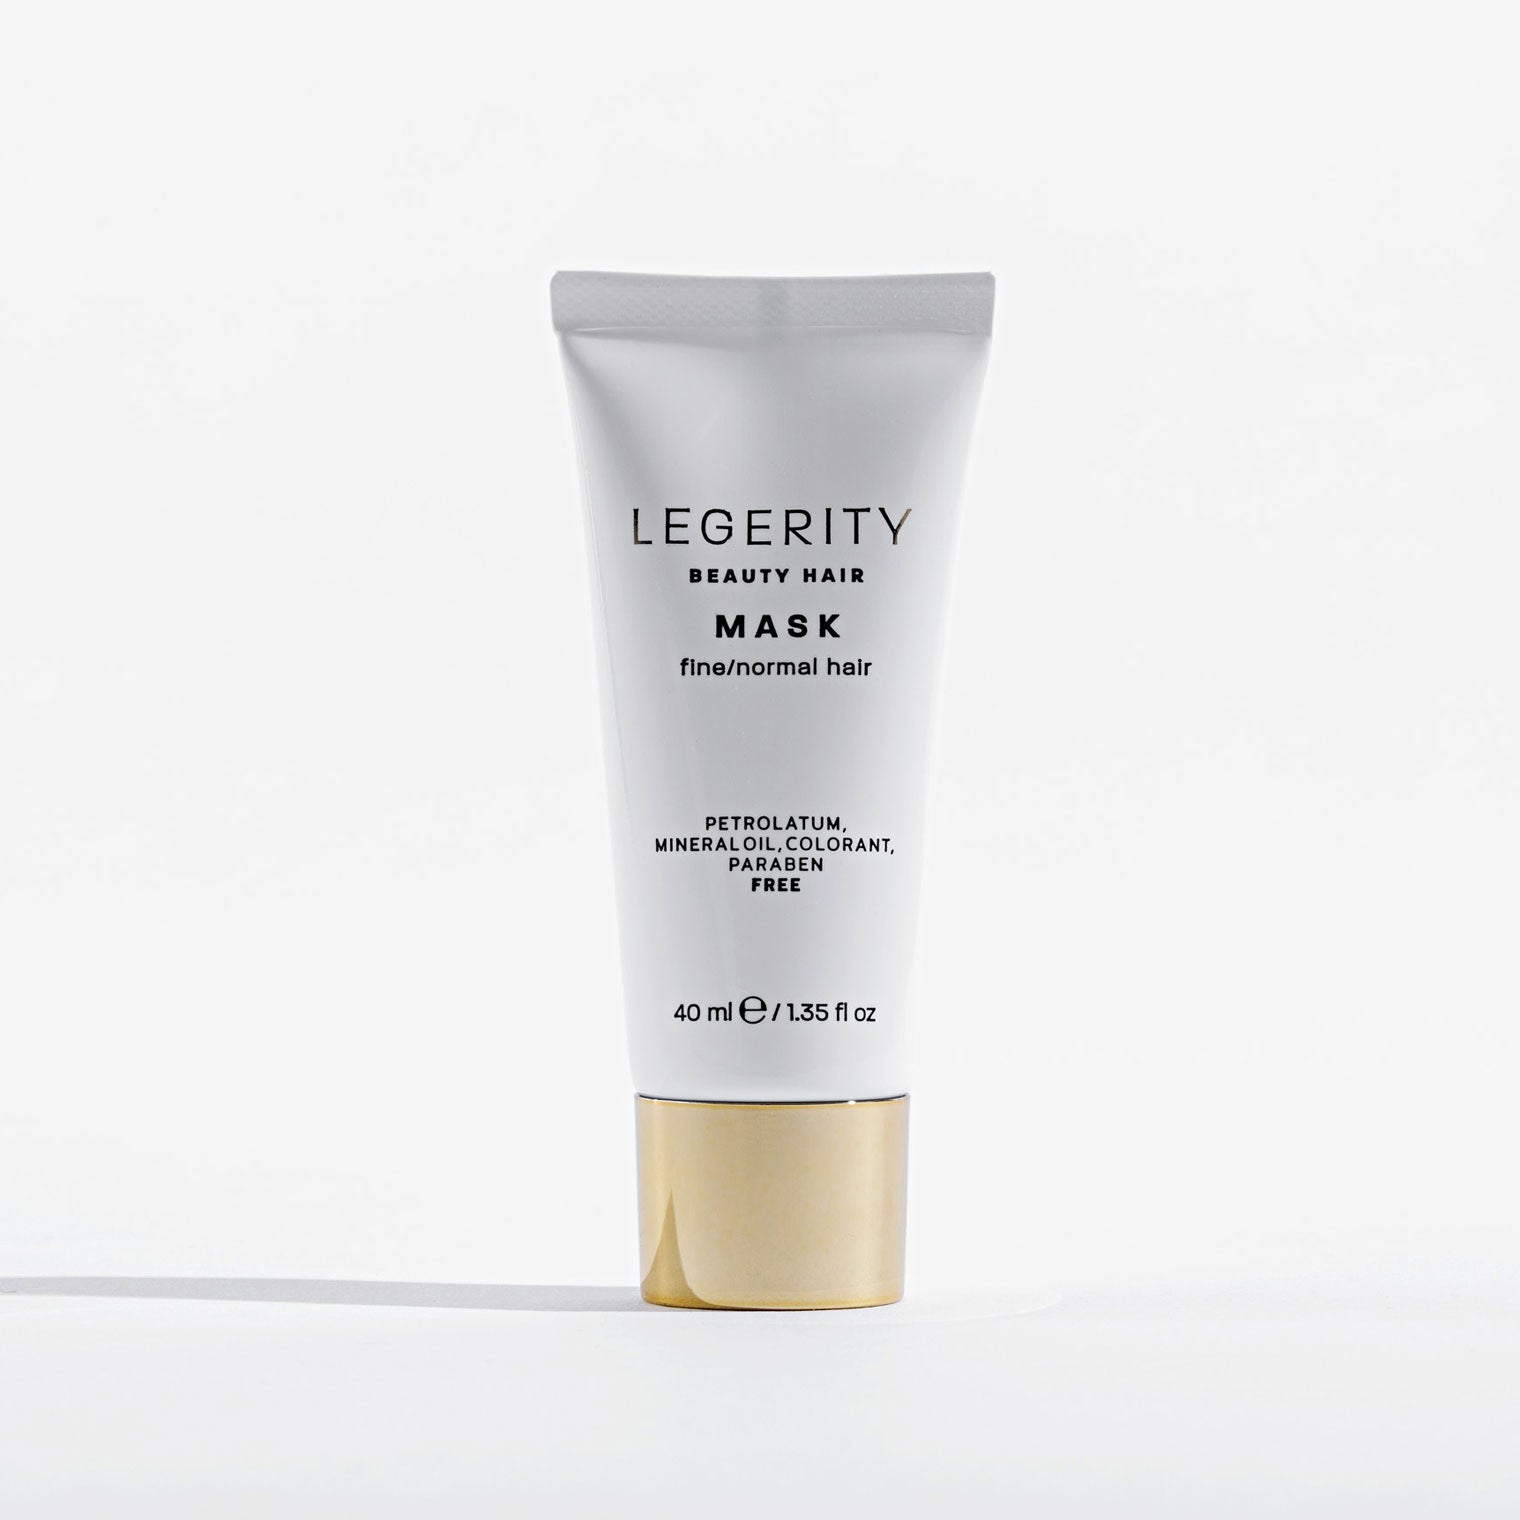 Legerity Beauty Hair Mask - Maschera per capelli - Screen Hair Care